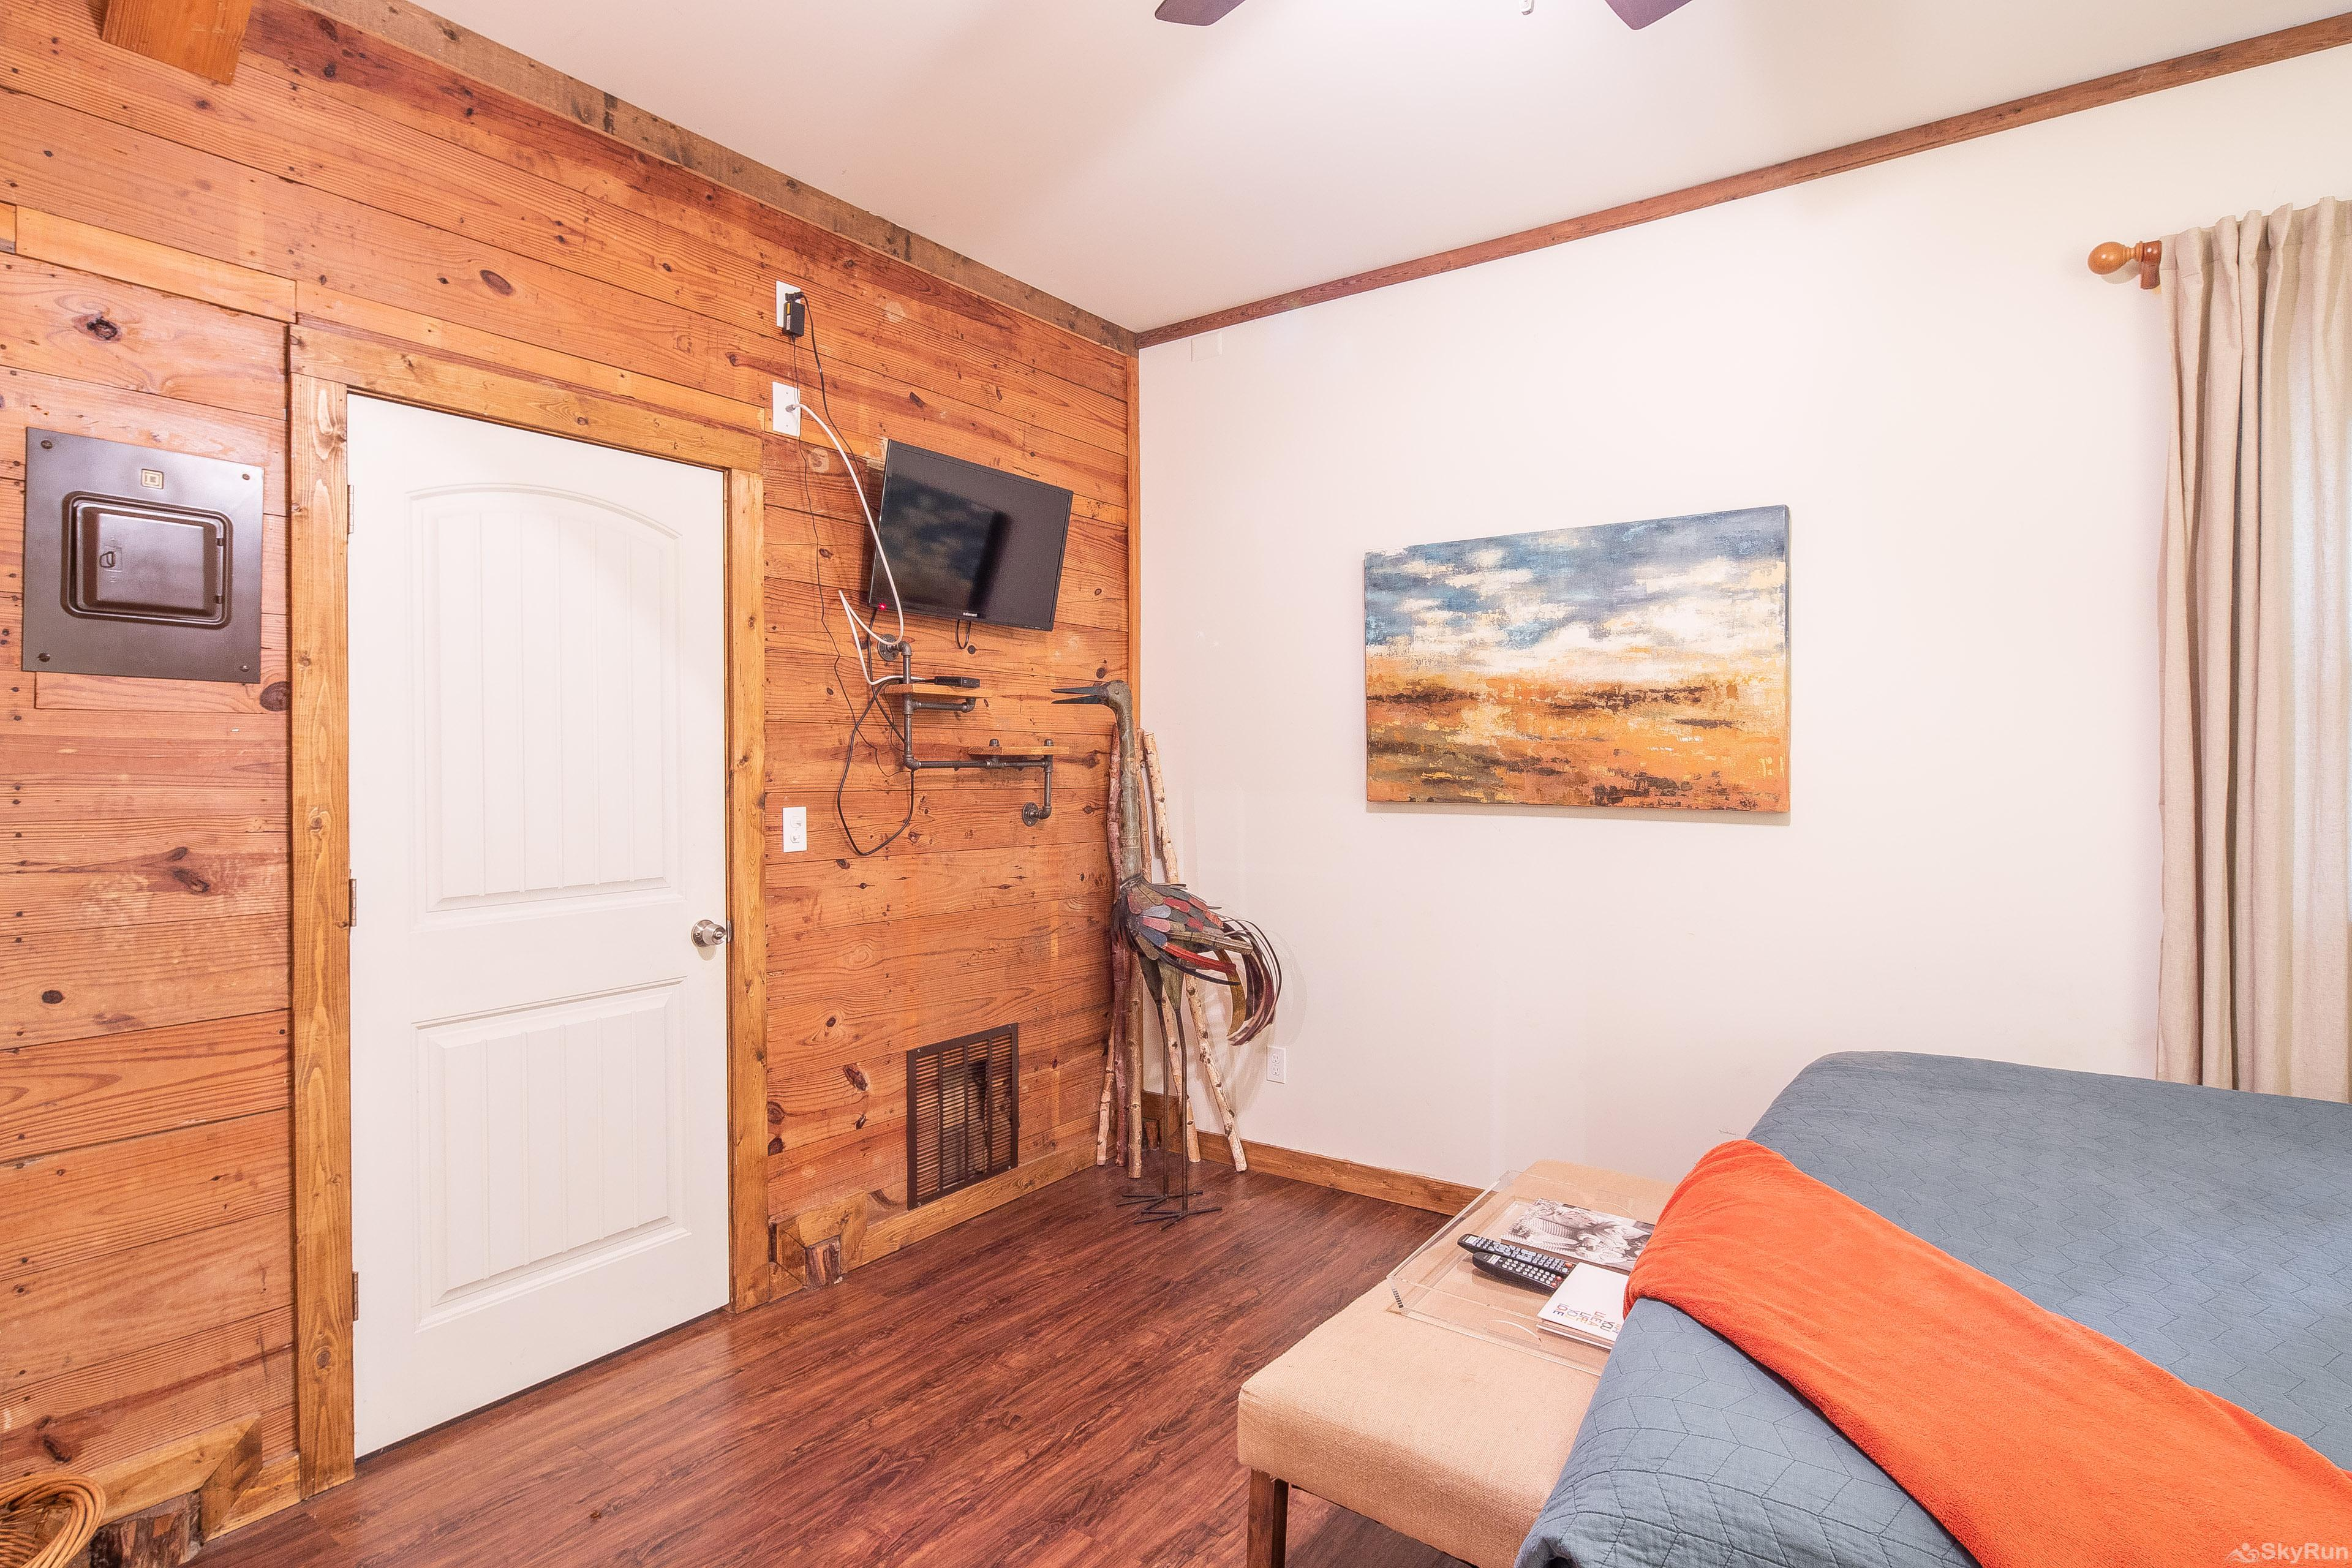 SUNSET RIVER HAUS Wall- mounted TV in first bedroom